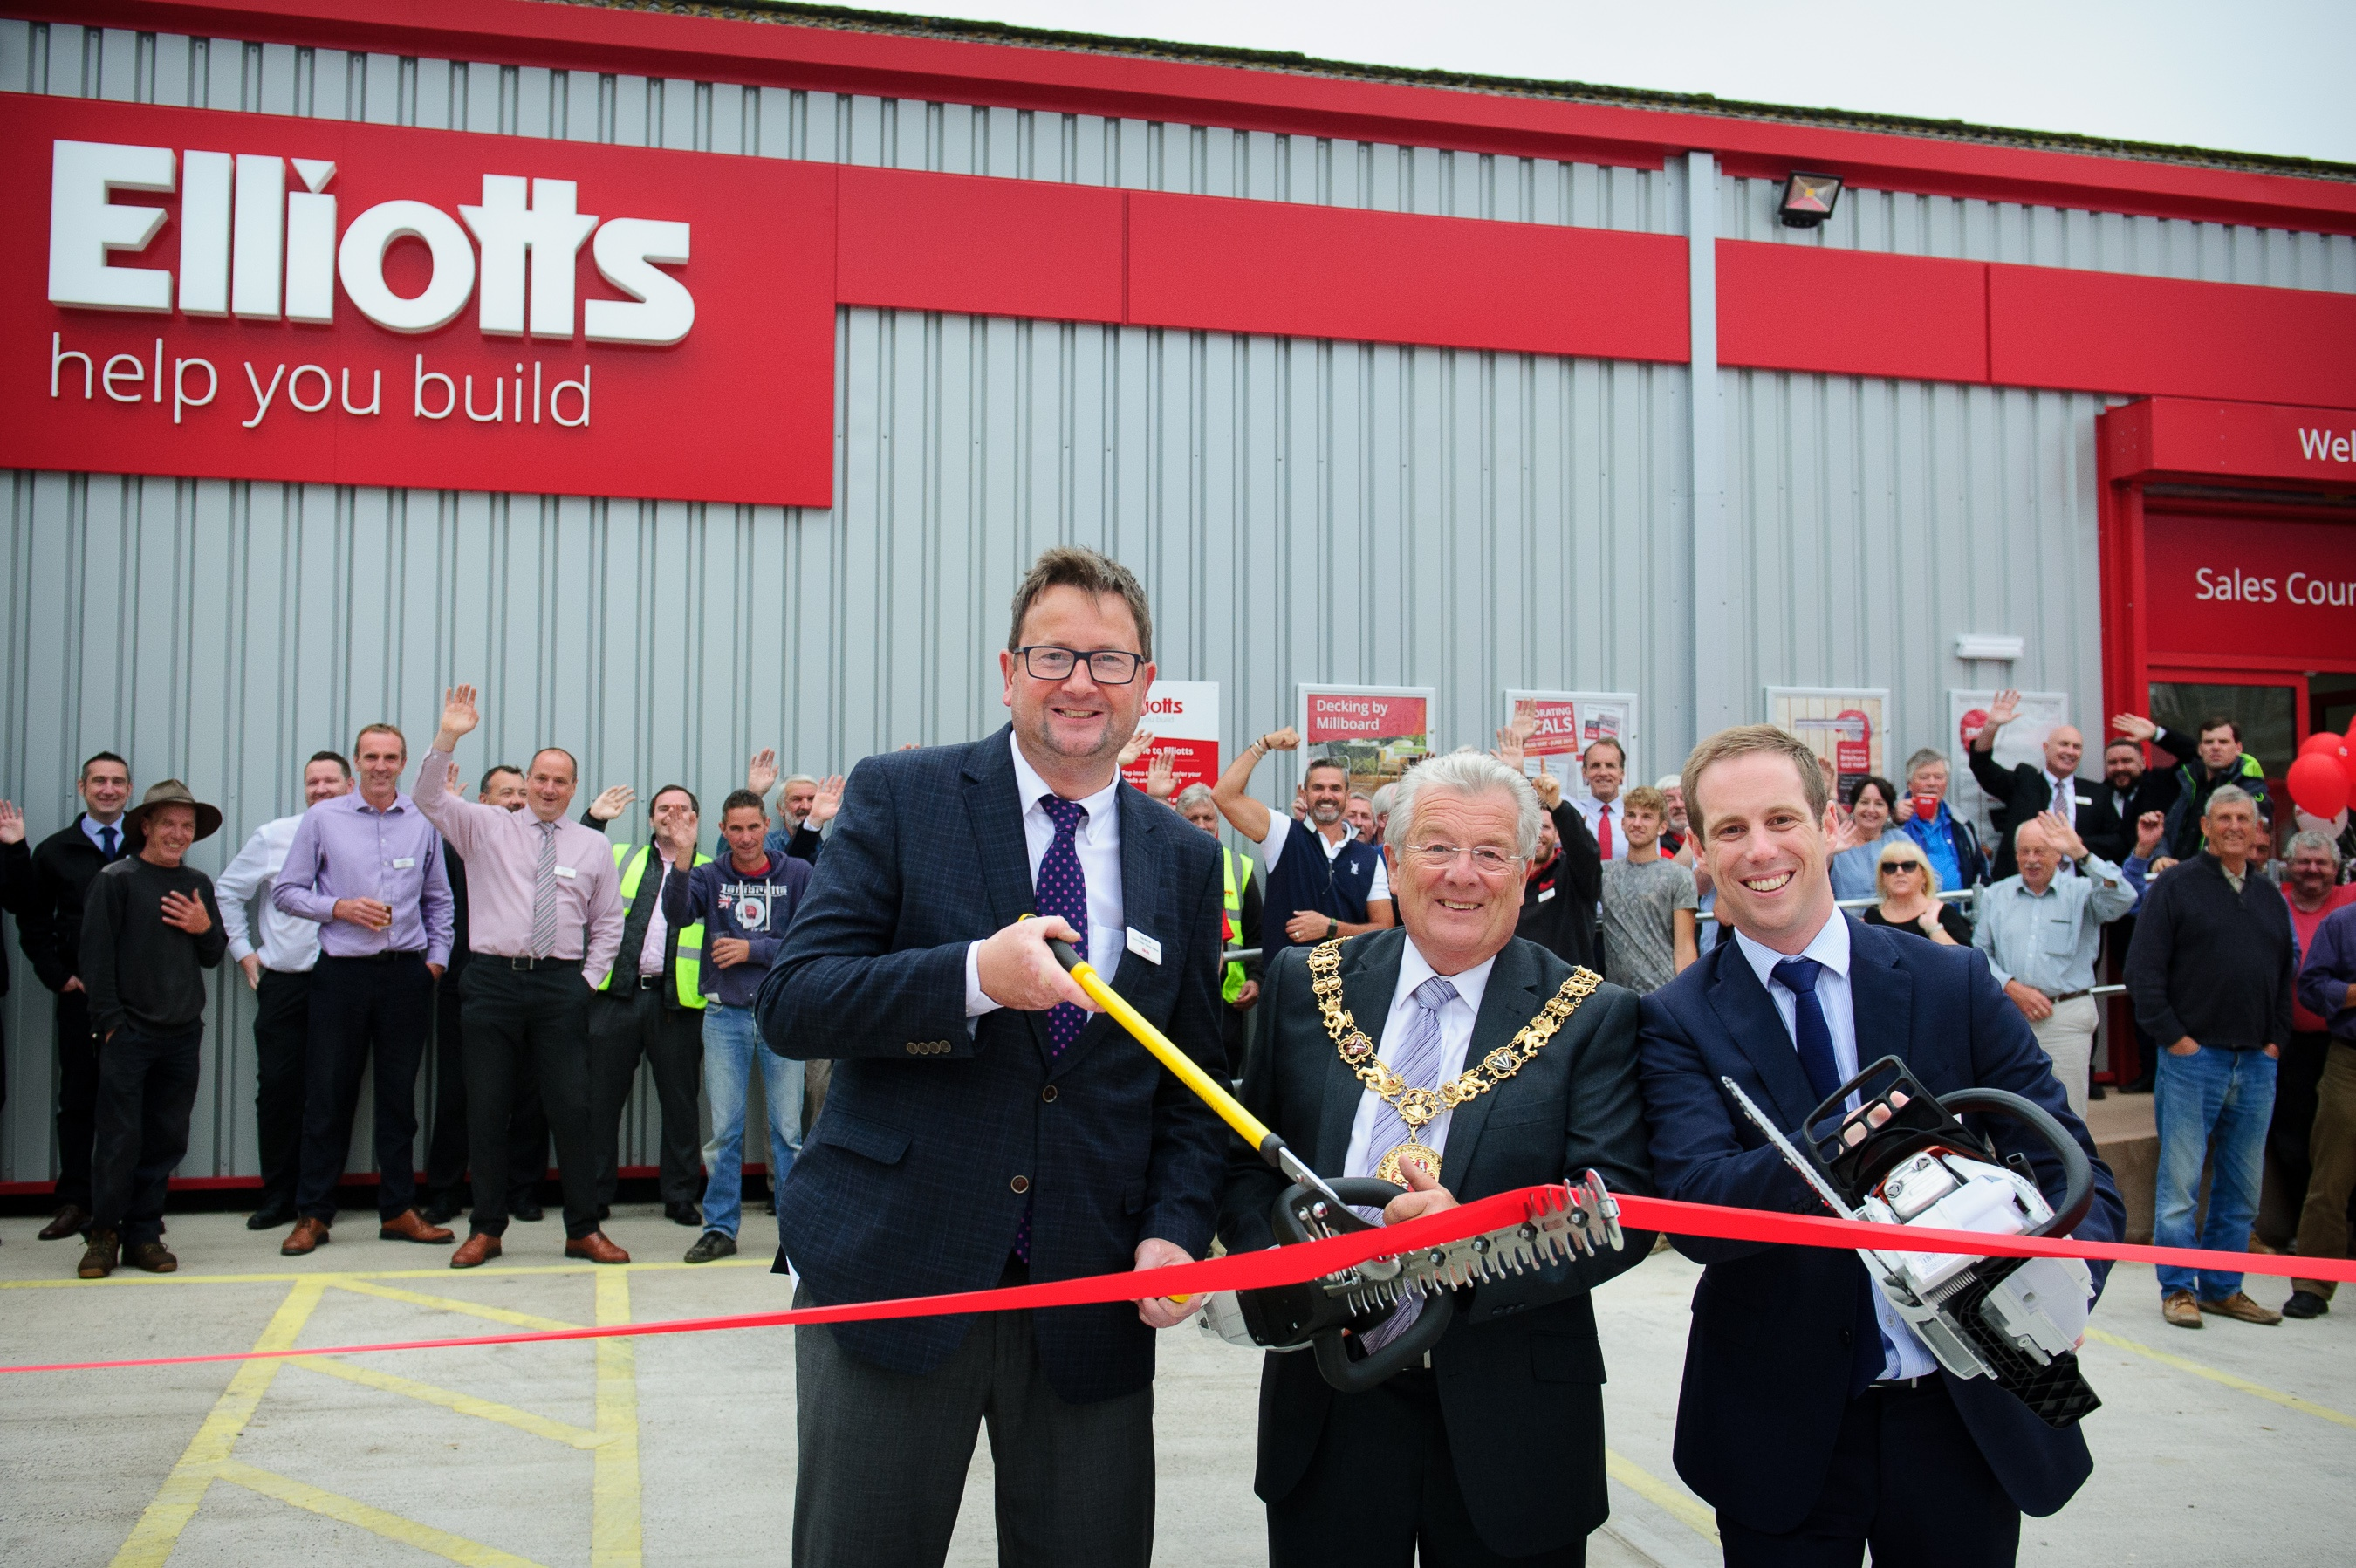 Pictured from left to right is Branch Manager, Rob Norris, The Mayor of Winchester, and Managing Director, Tom Elliott